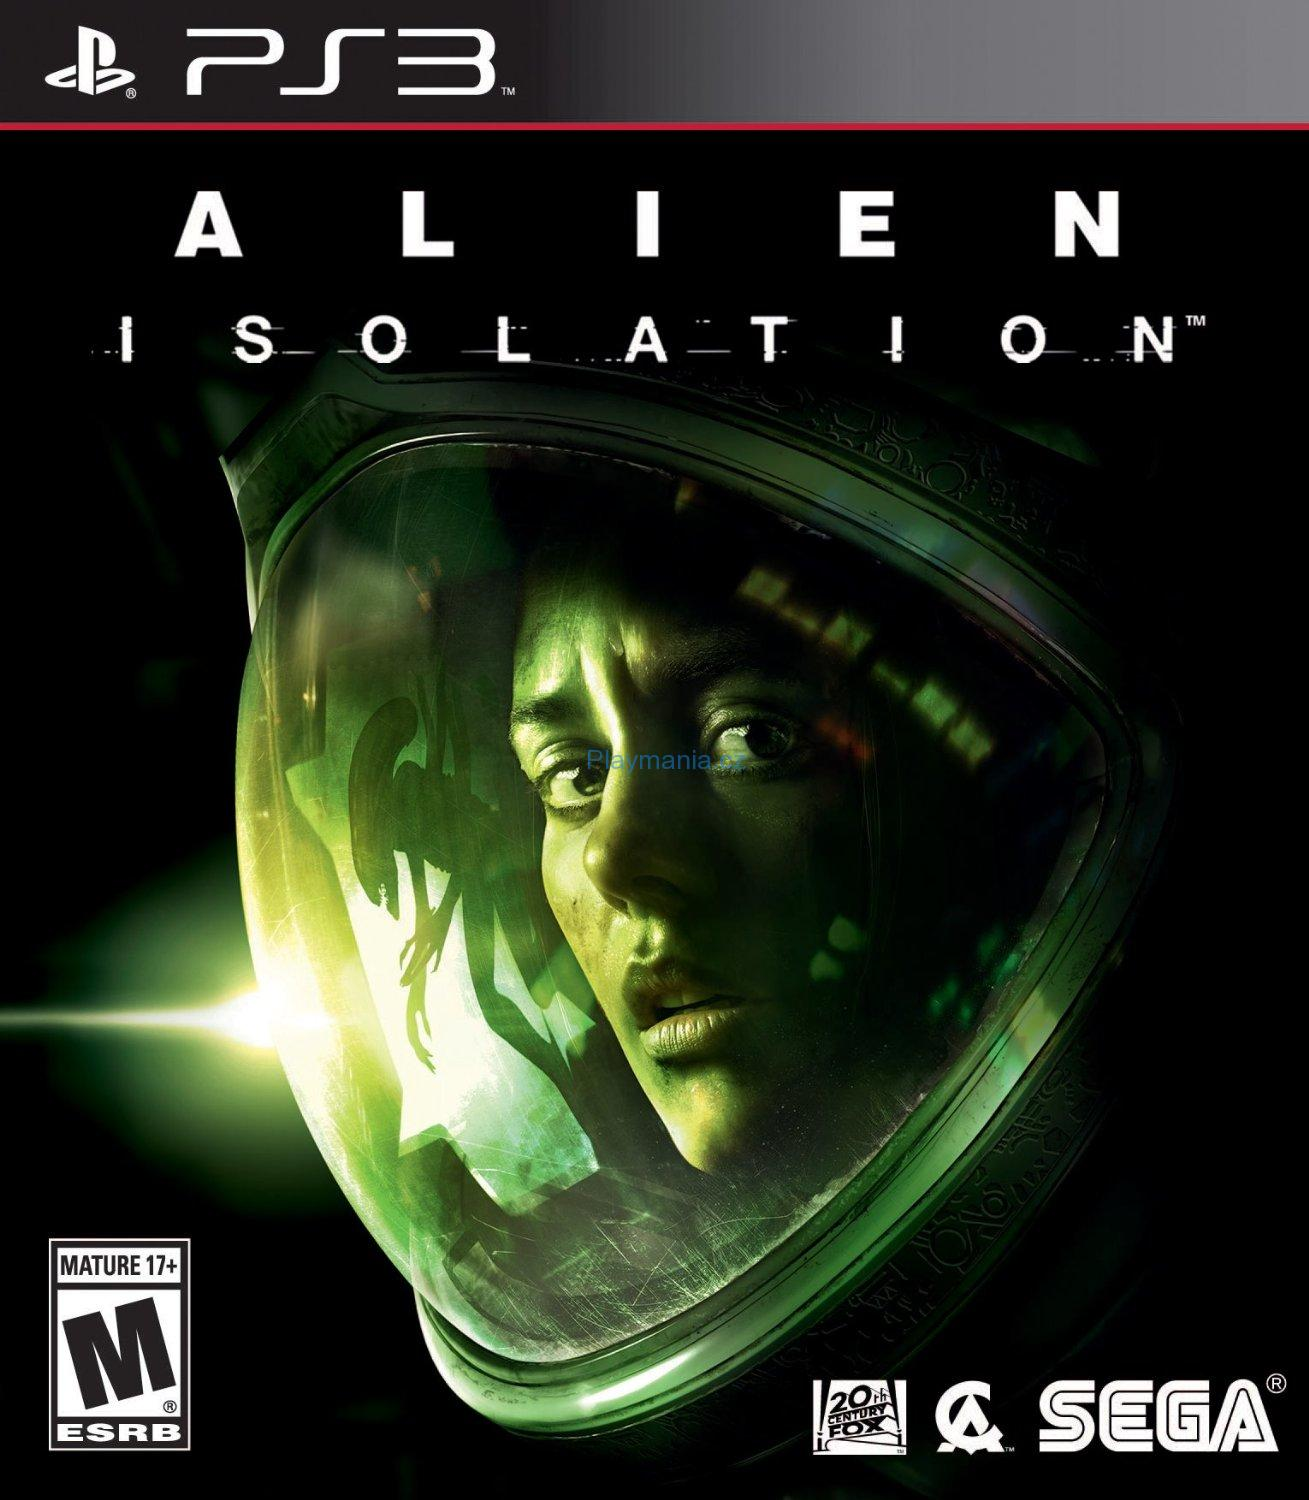 PS3 ALIEN ISOLATION MOSTROMO EDITION